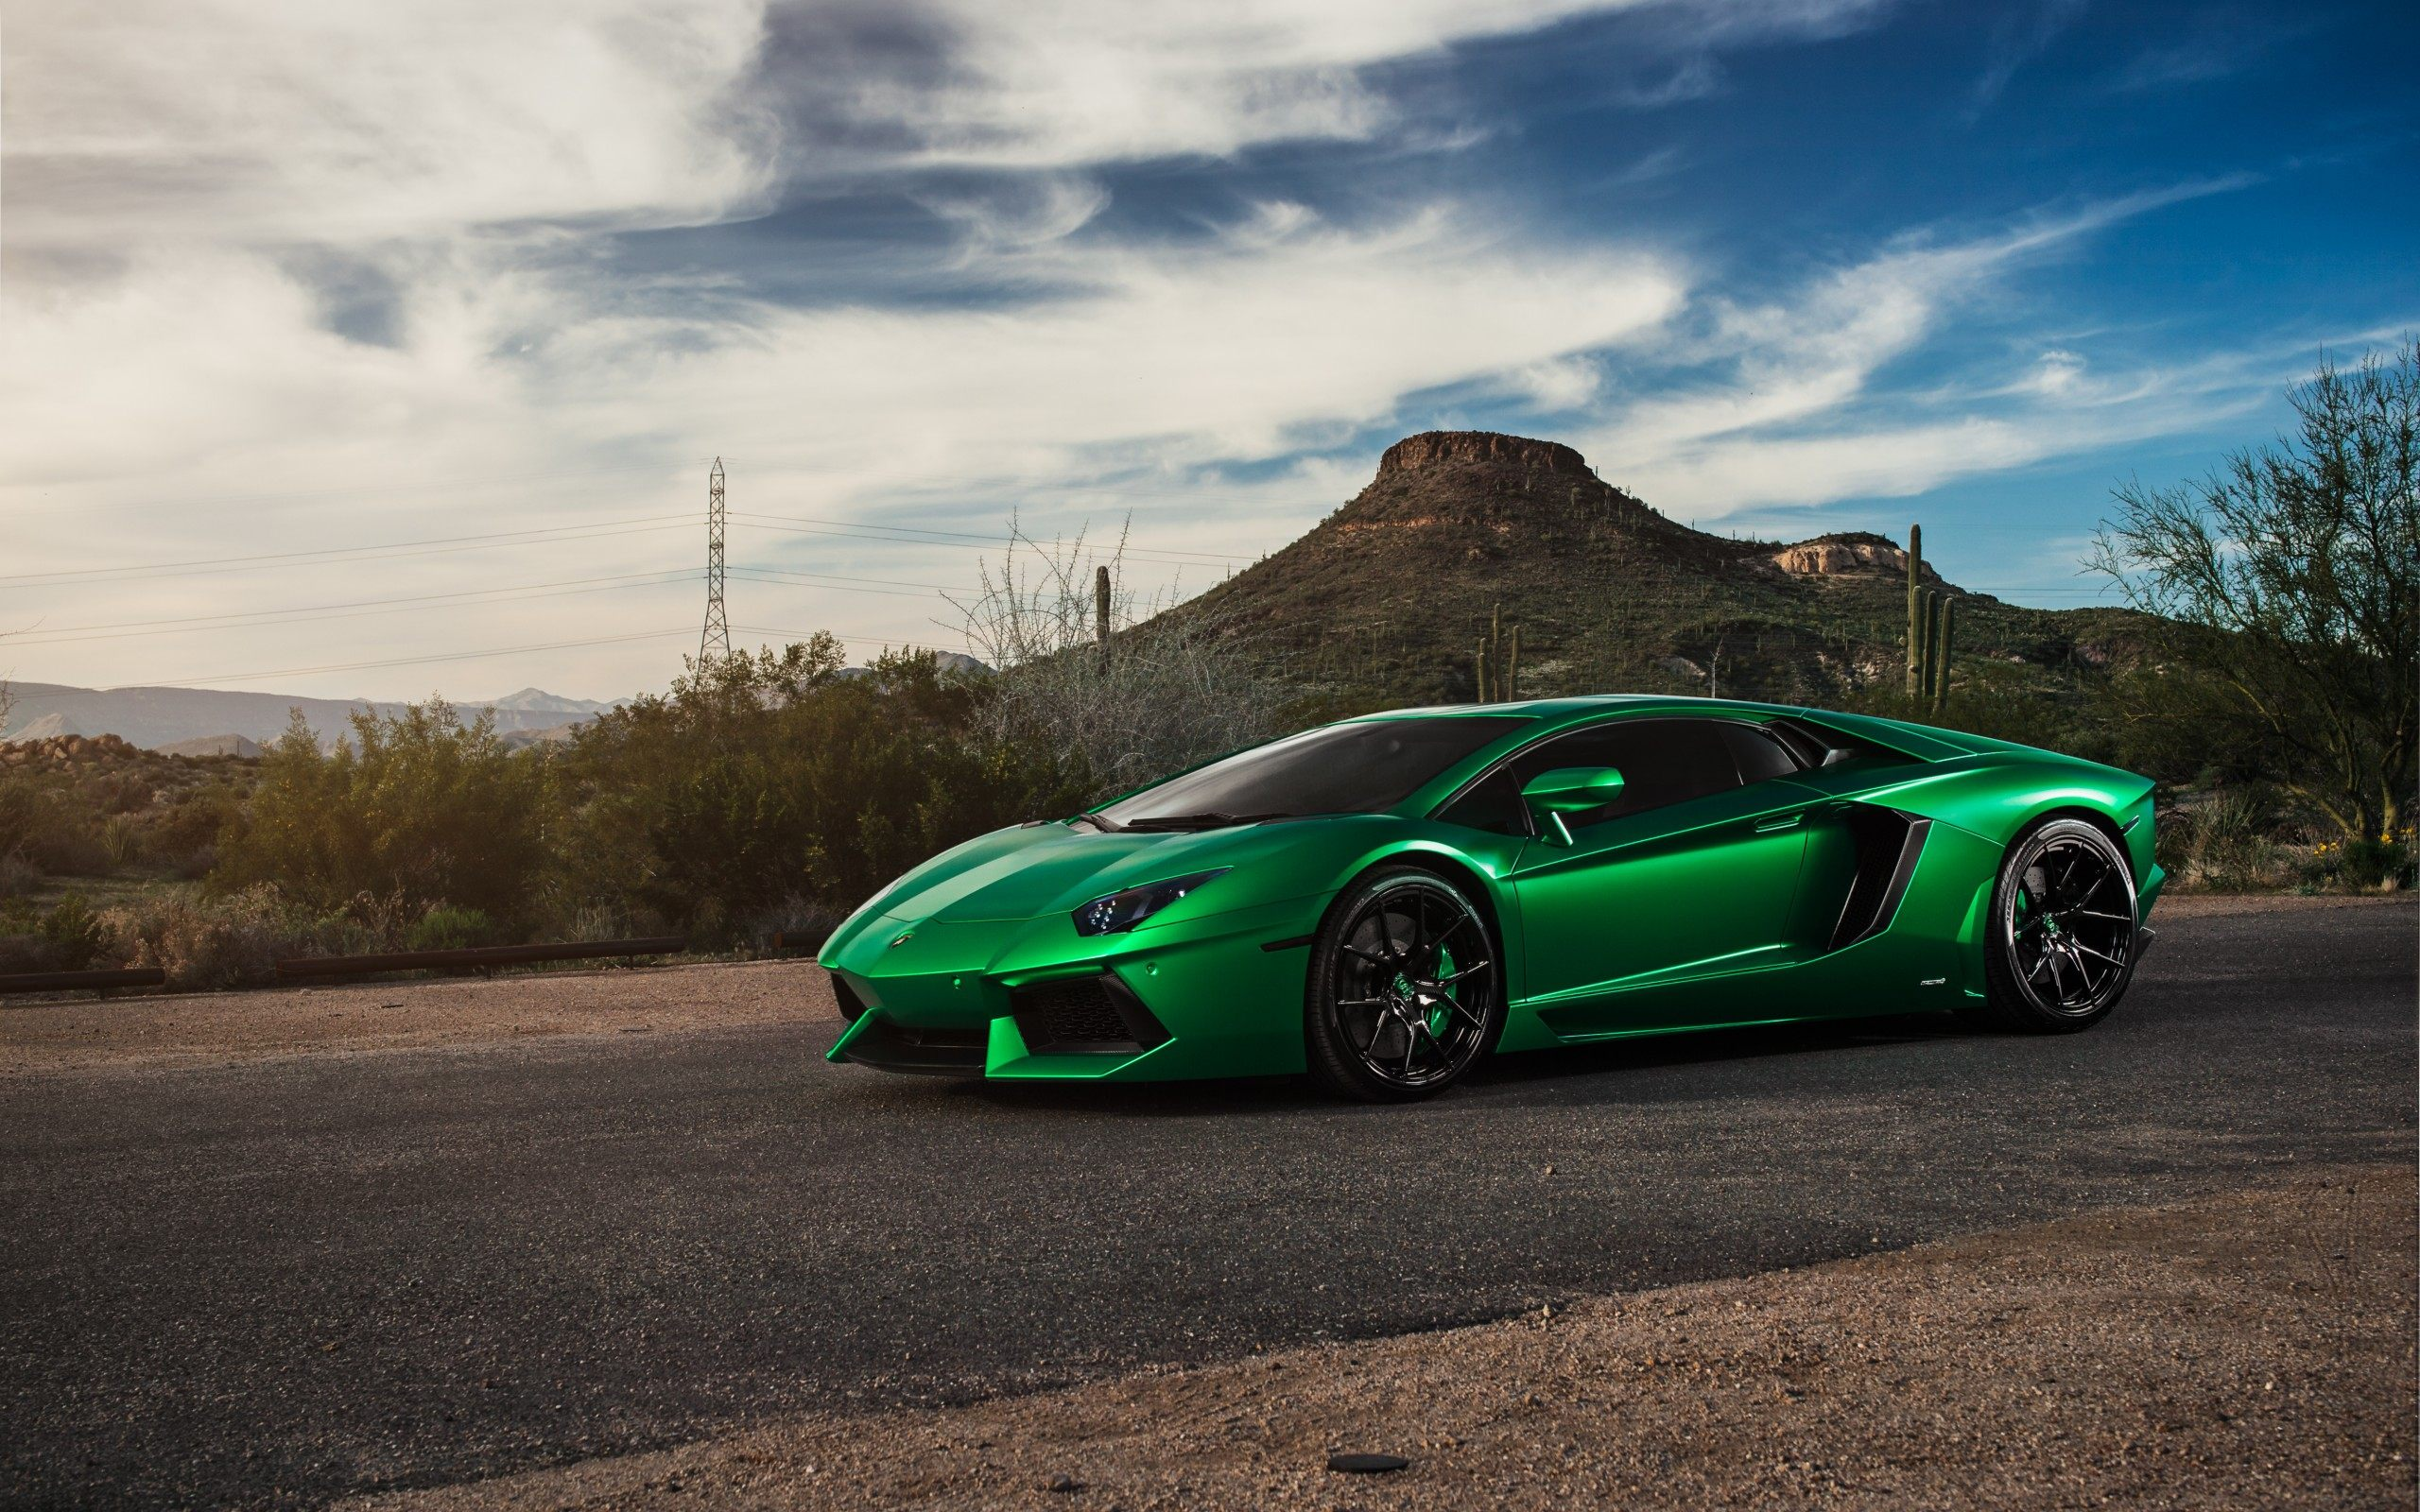 Green Lamborghini Supercar Wallpaper For Desktop amp Mobile 2560x1600